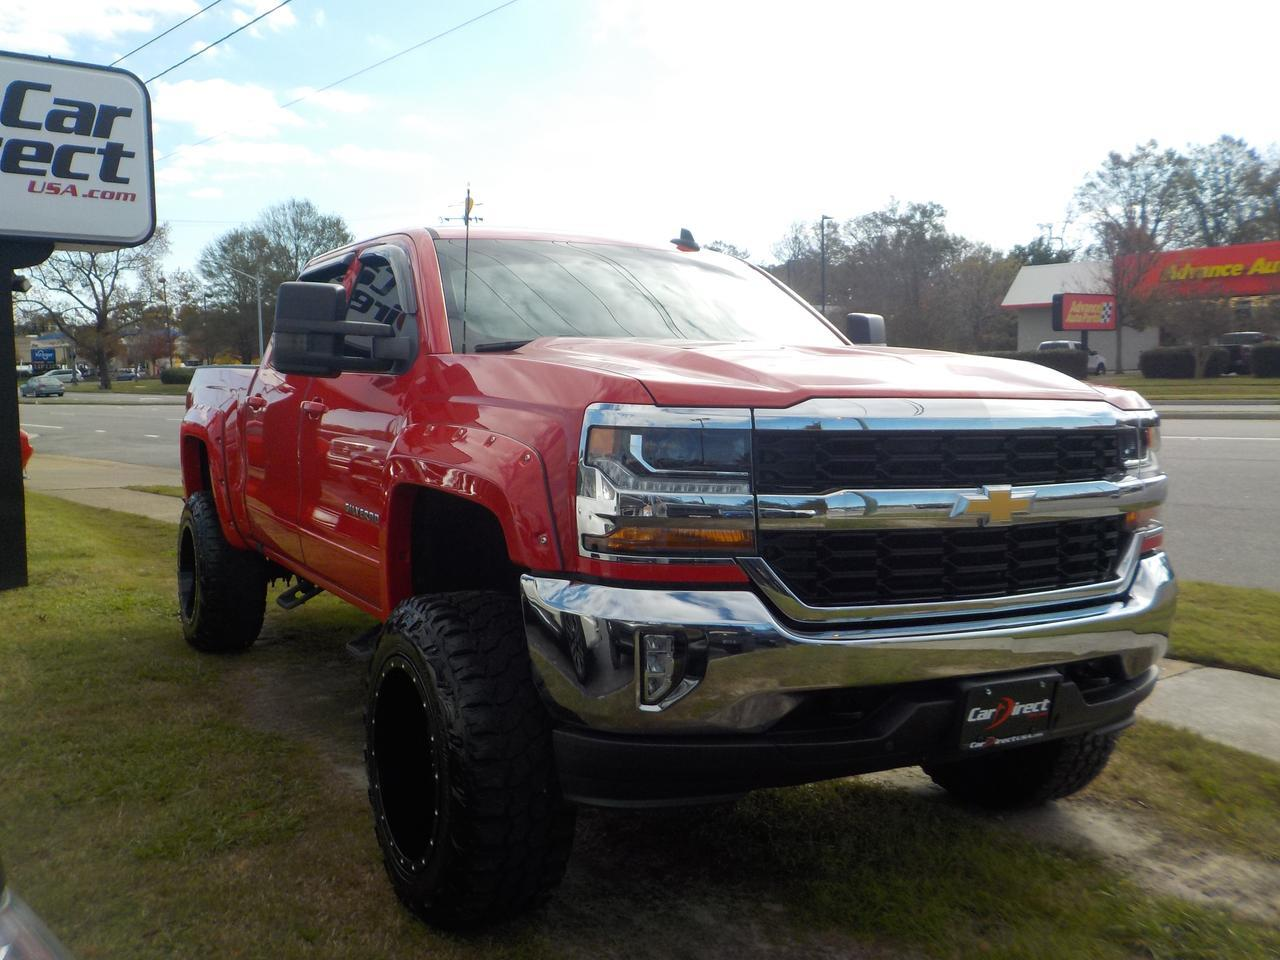 2016 CHEVROLET SILVERADO 1500 CREW CAB LT 4X4, CUSTOM RRP RIMS, LIFTED, BED LINER, BACKUP CAM, TOW PACKAGE, ONLY 61K MILES! Virginia Beach VA